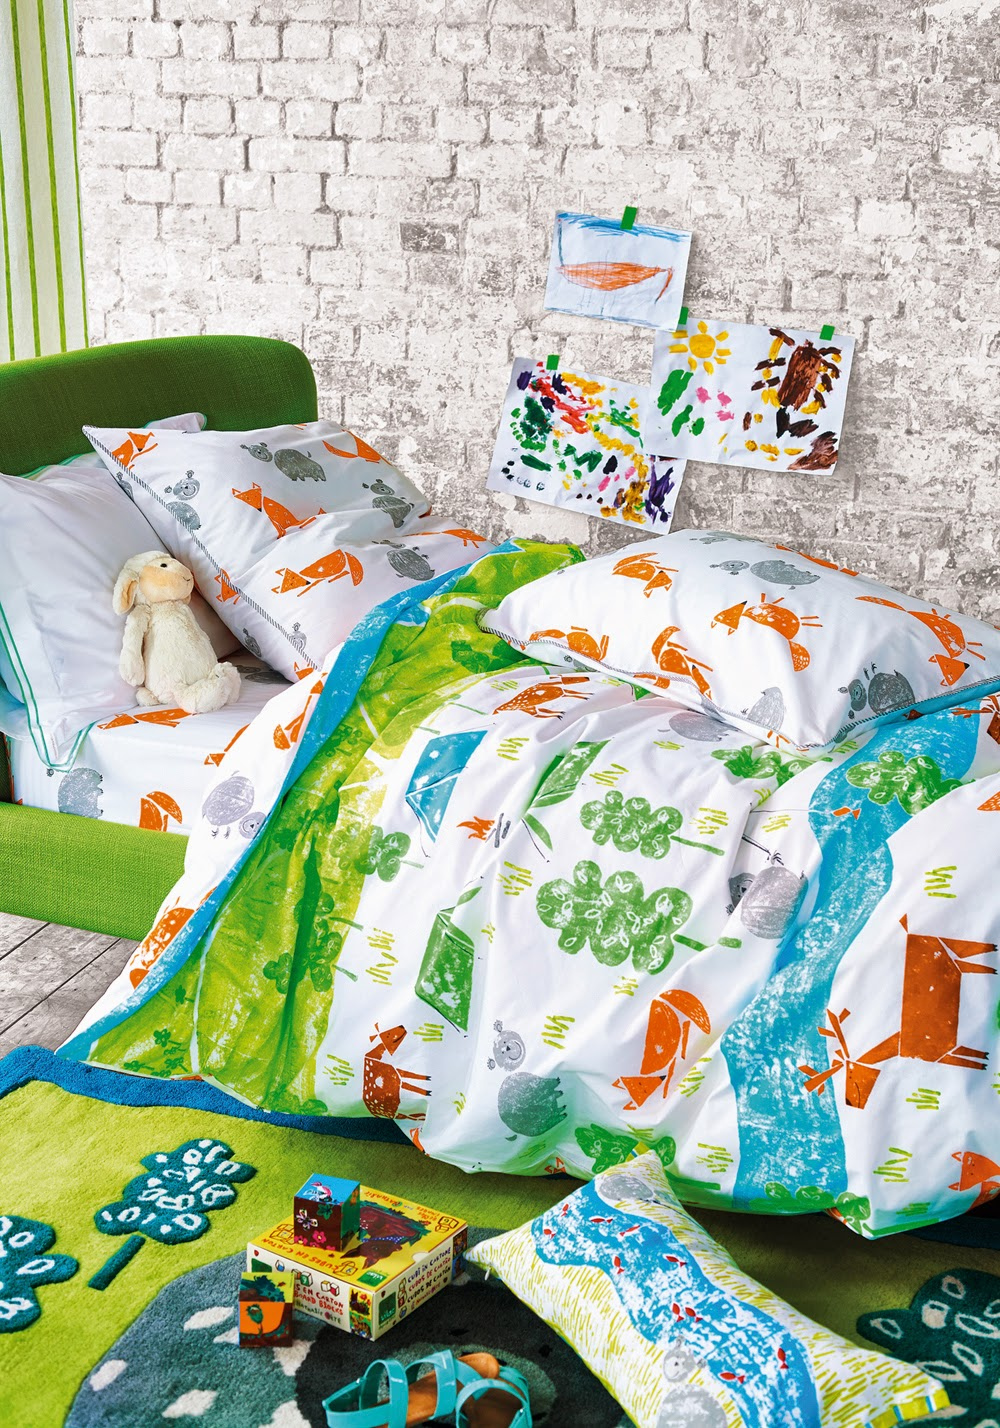 The Great Outdoors de Designers Guild. Funda nordica y juego de sabanas